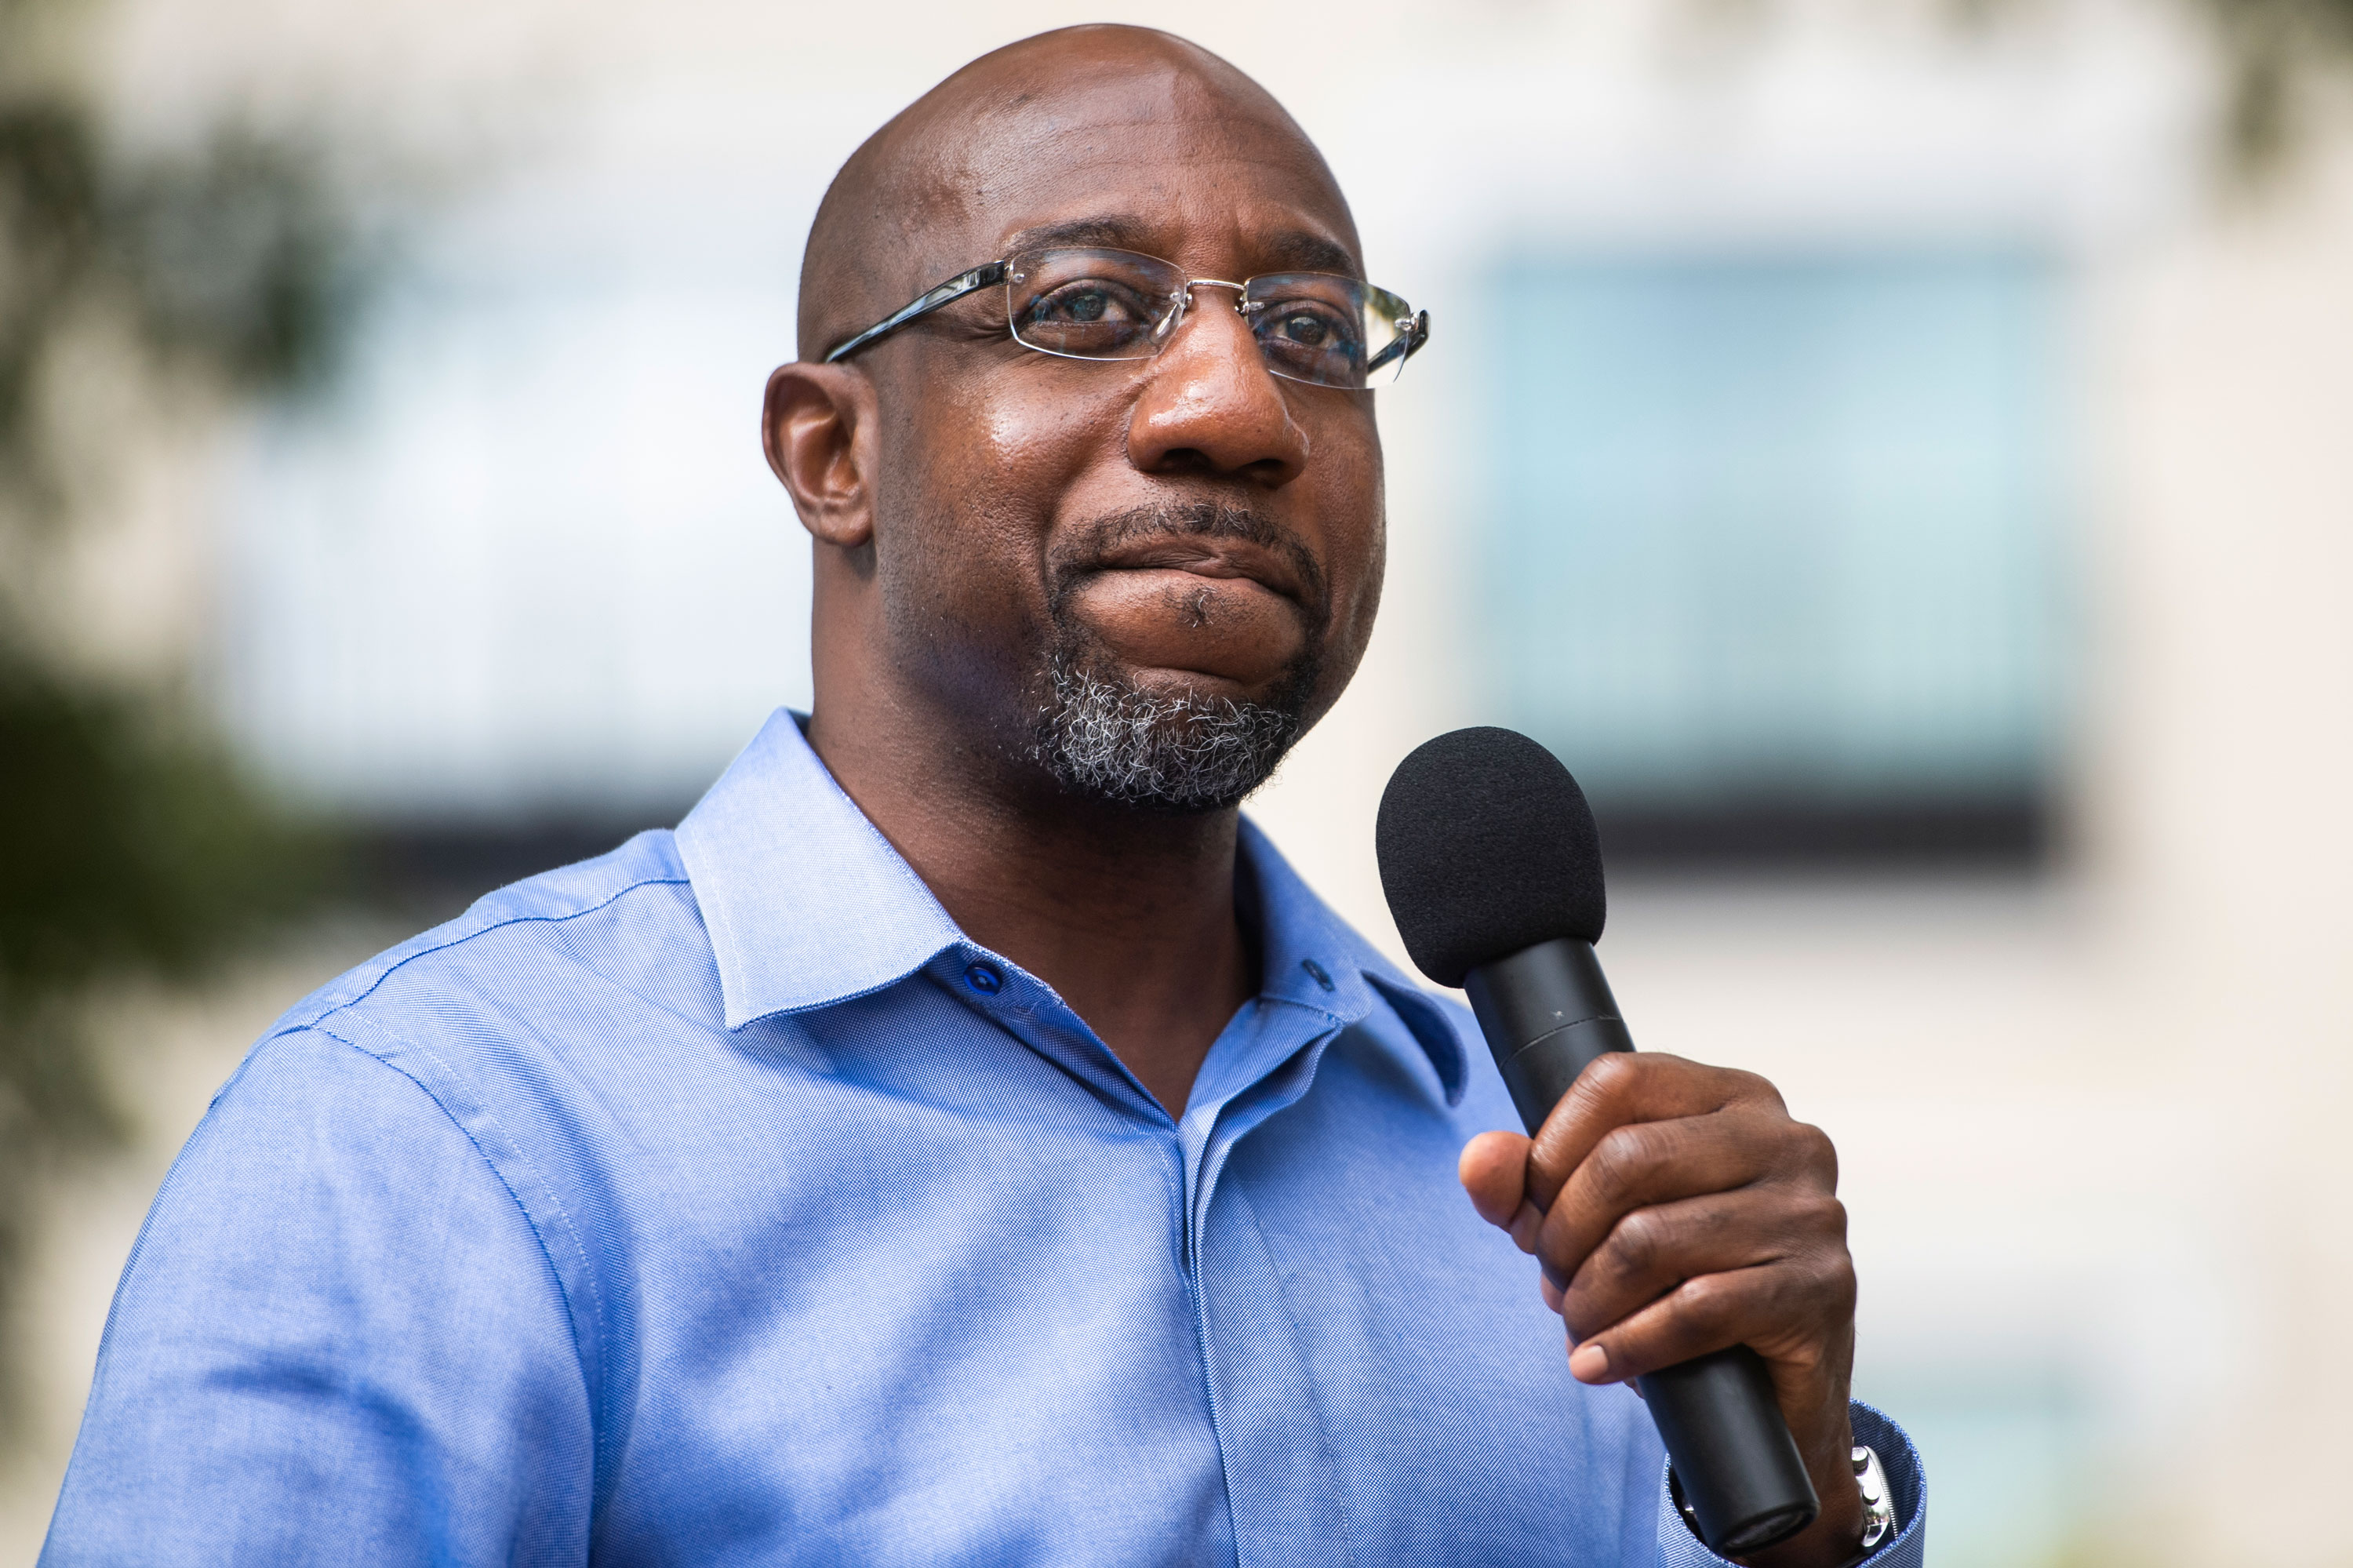 Democrat Senate candidate Raphael Warnock speaks during a campaign rally in LaGrange, Georgia, on October 29.